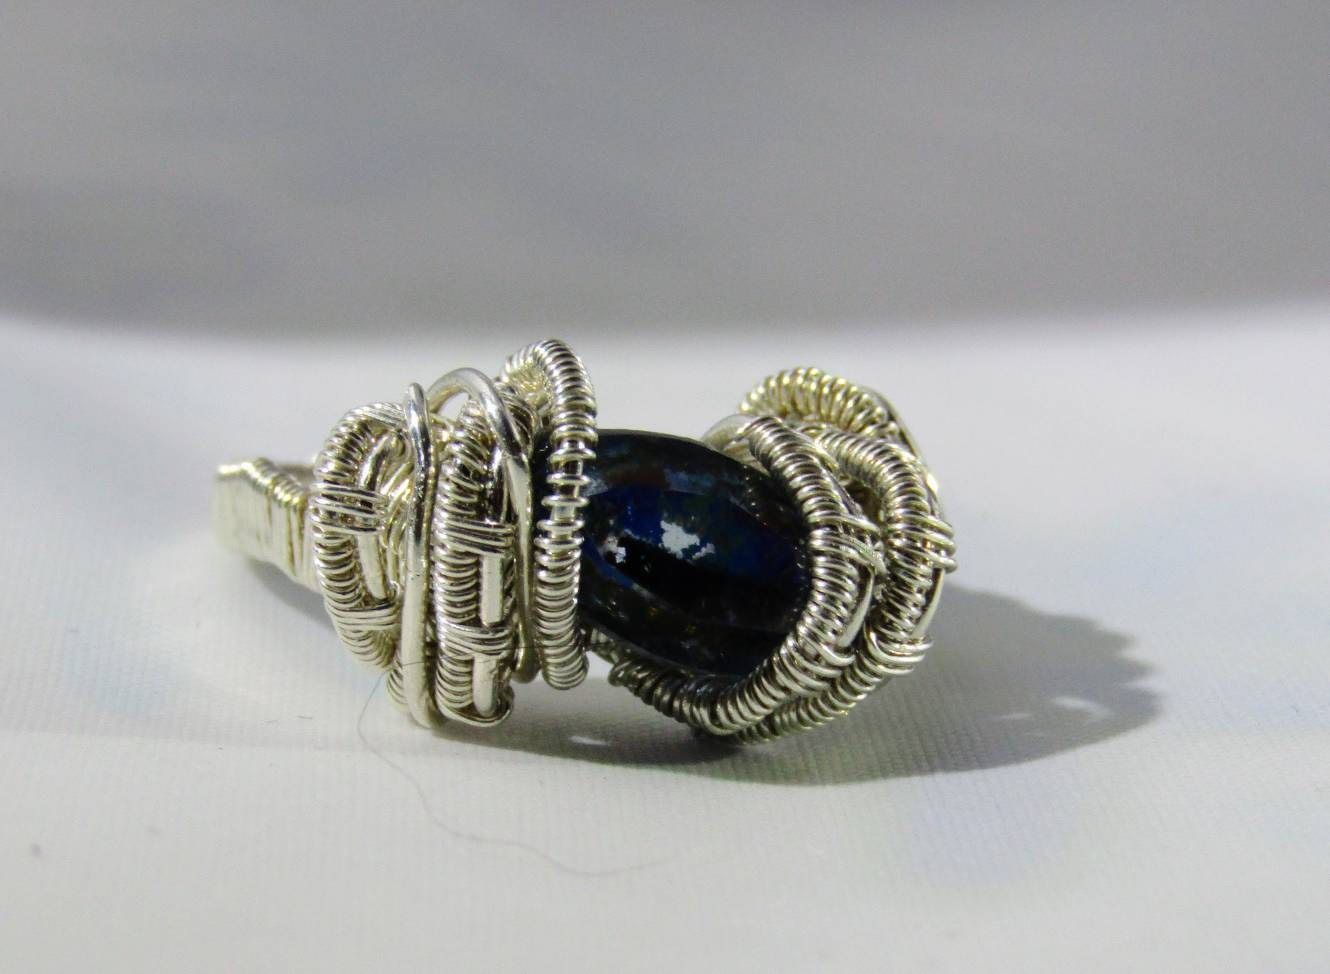 Gemstone Ring- Silver Wire Wrapped Marquise Cut Faceted Gemstone Ring